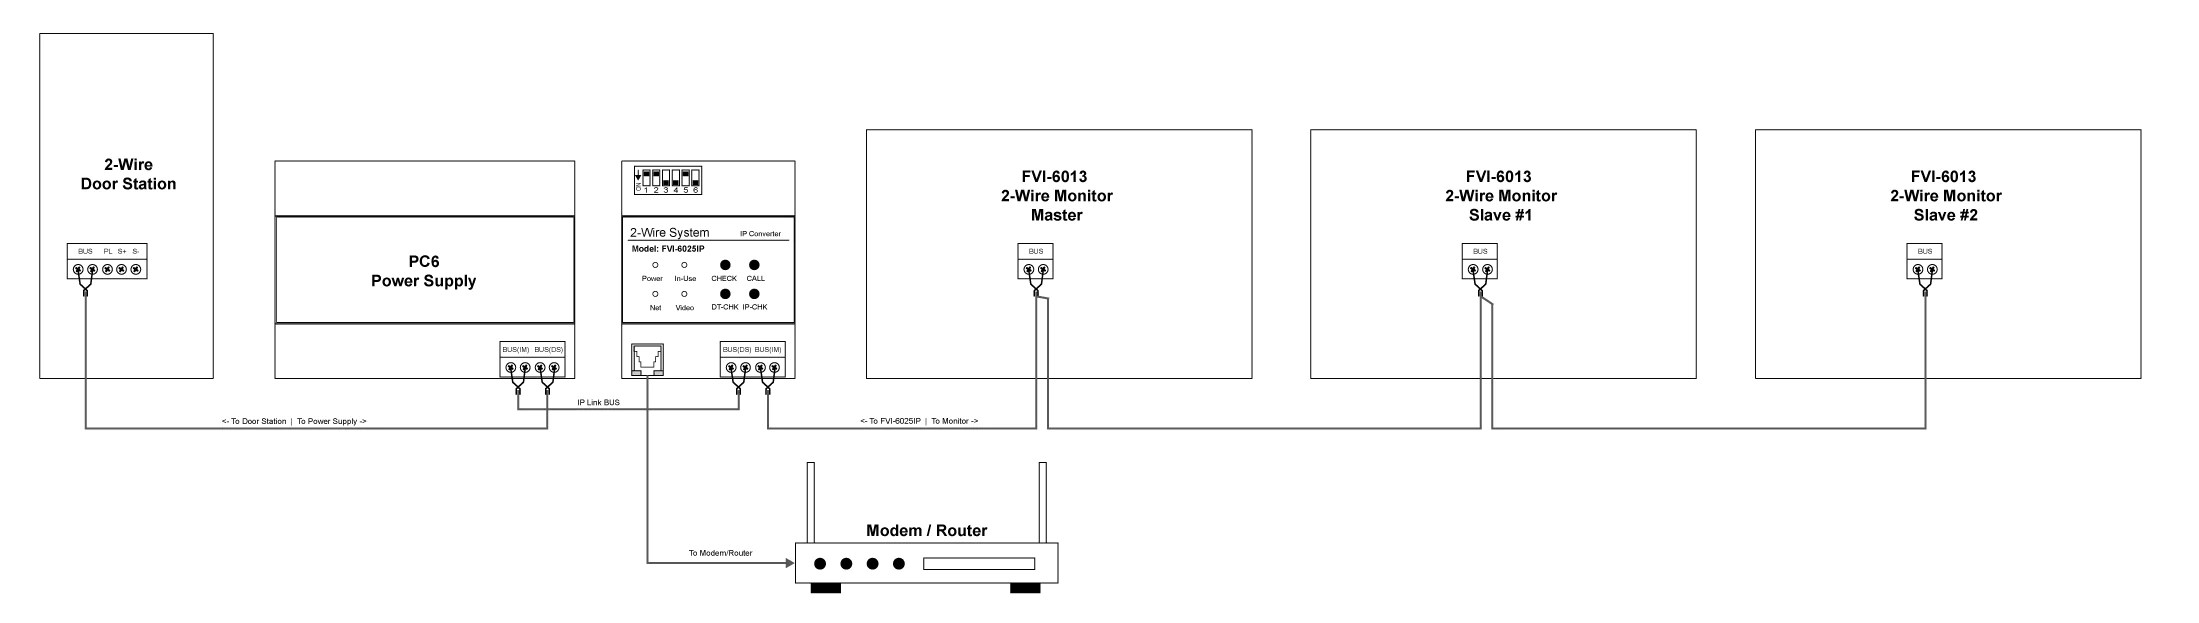 medium resolution of 2 wire app instructions u2013 fermax australiafor a multiple monitor setup without a branch controller